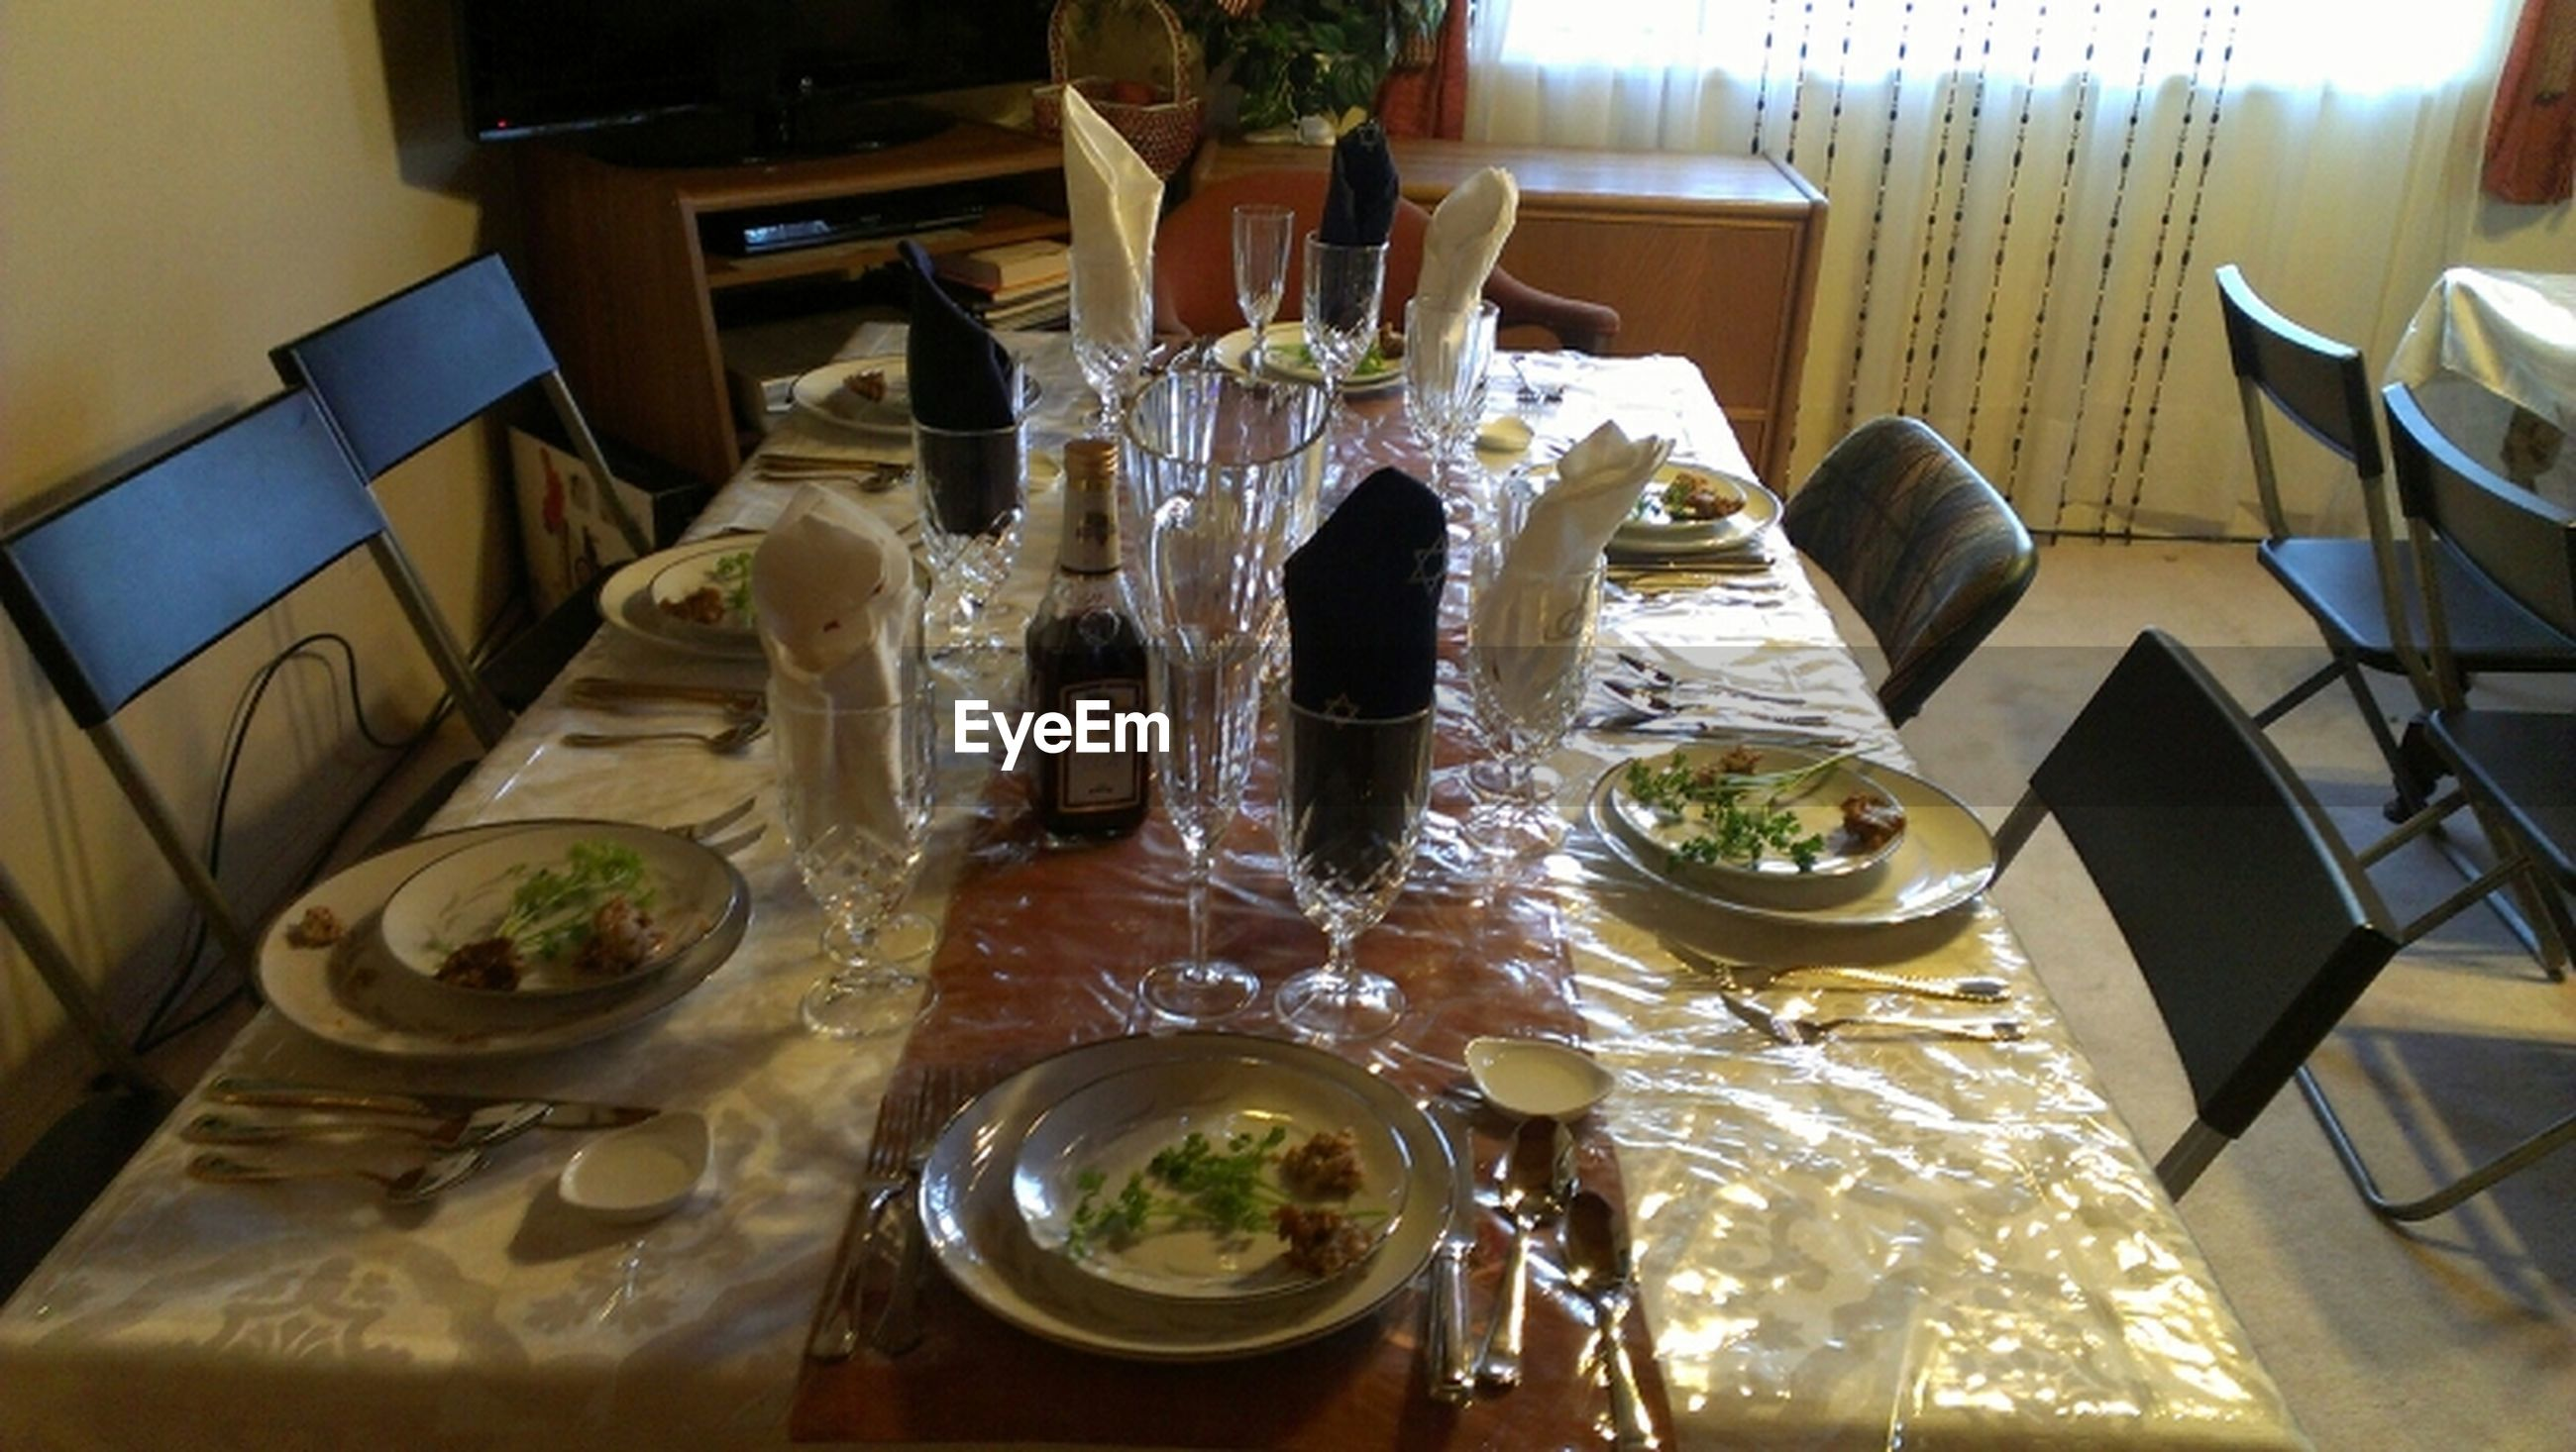 indoors, table, food and drink, still life, high angle view, arrangement, drink, drinking glass, food, home interior, dining table, plate, freshness, restaurant, no people, place setting, glass - material, absence, variation, chair